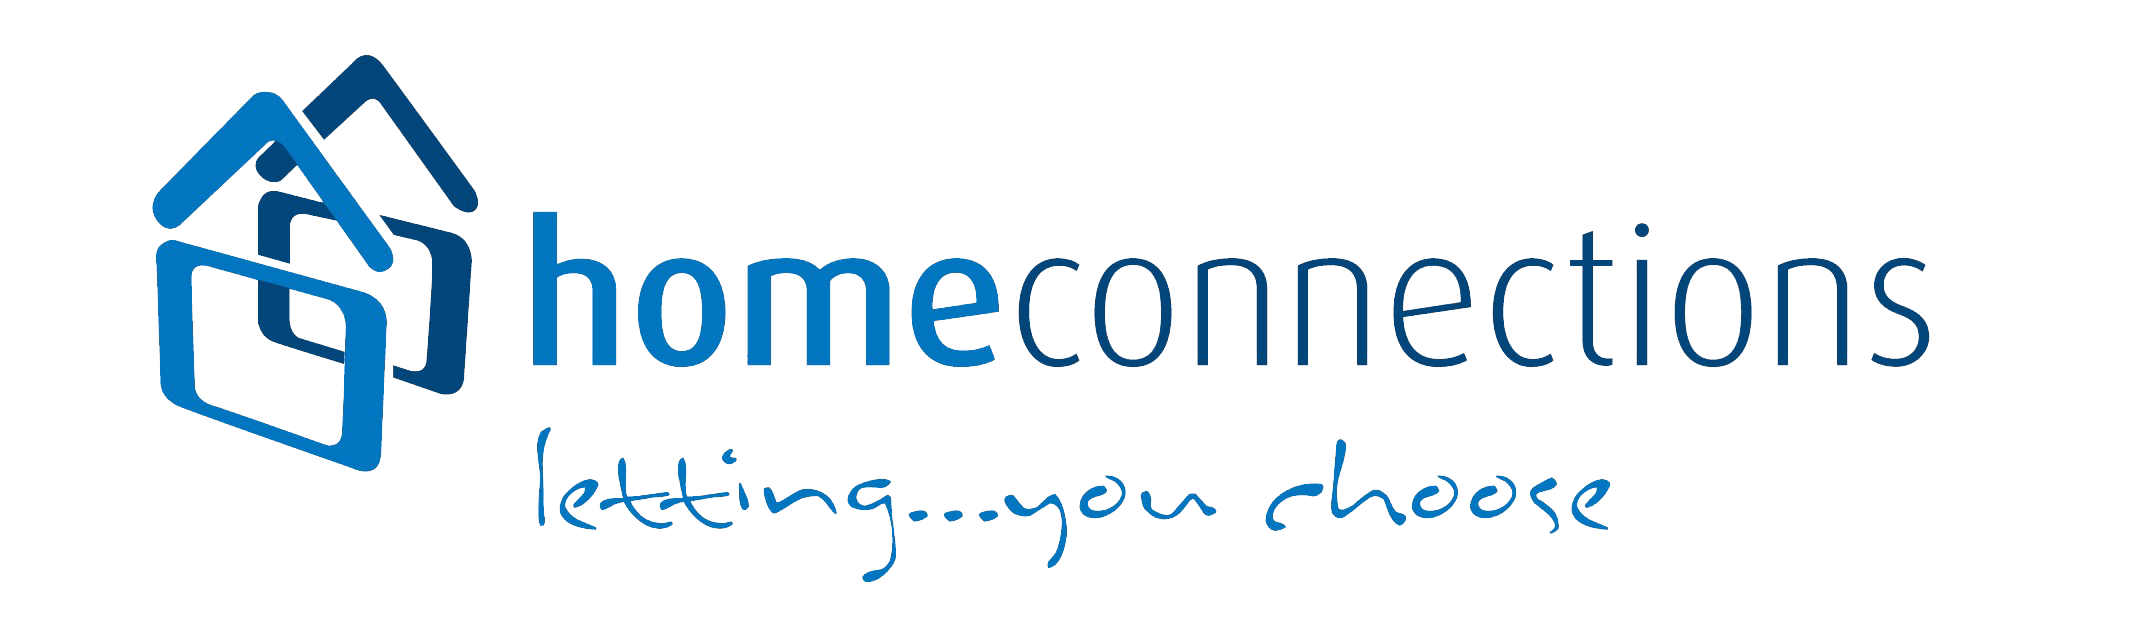 Homeconnections logo